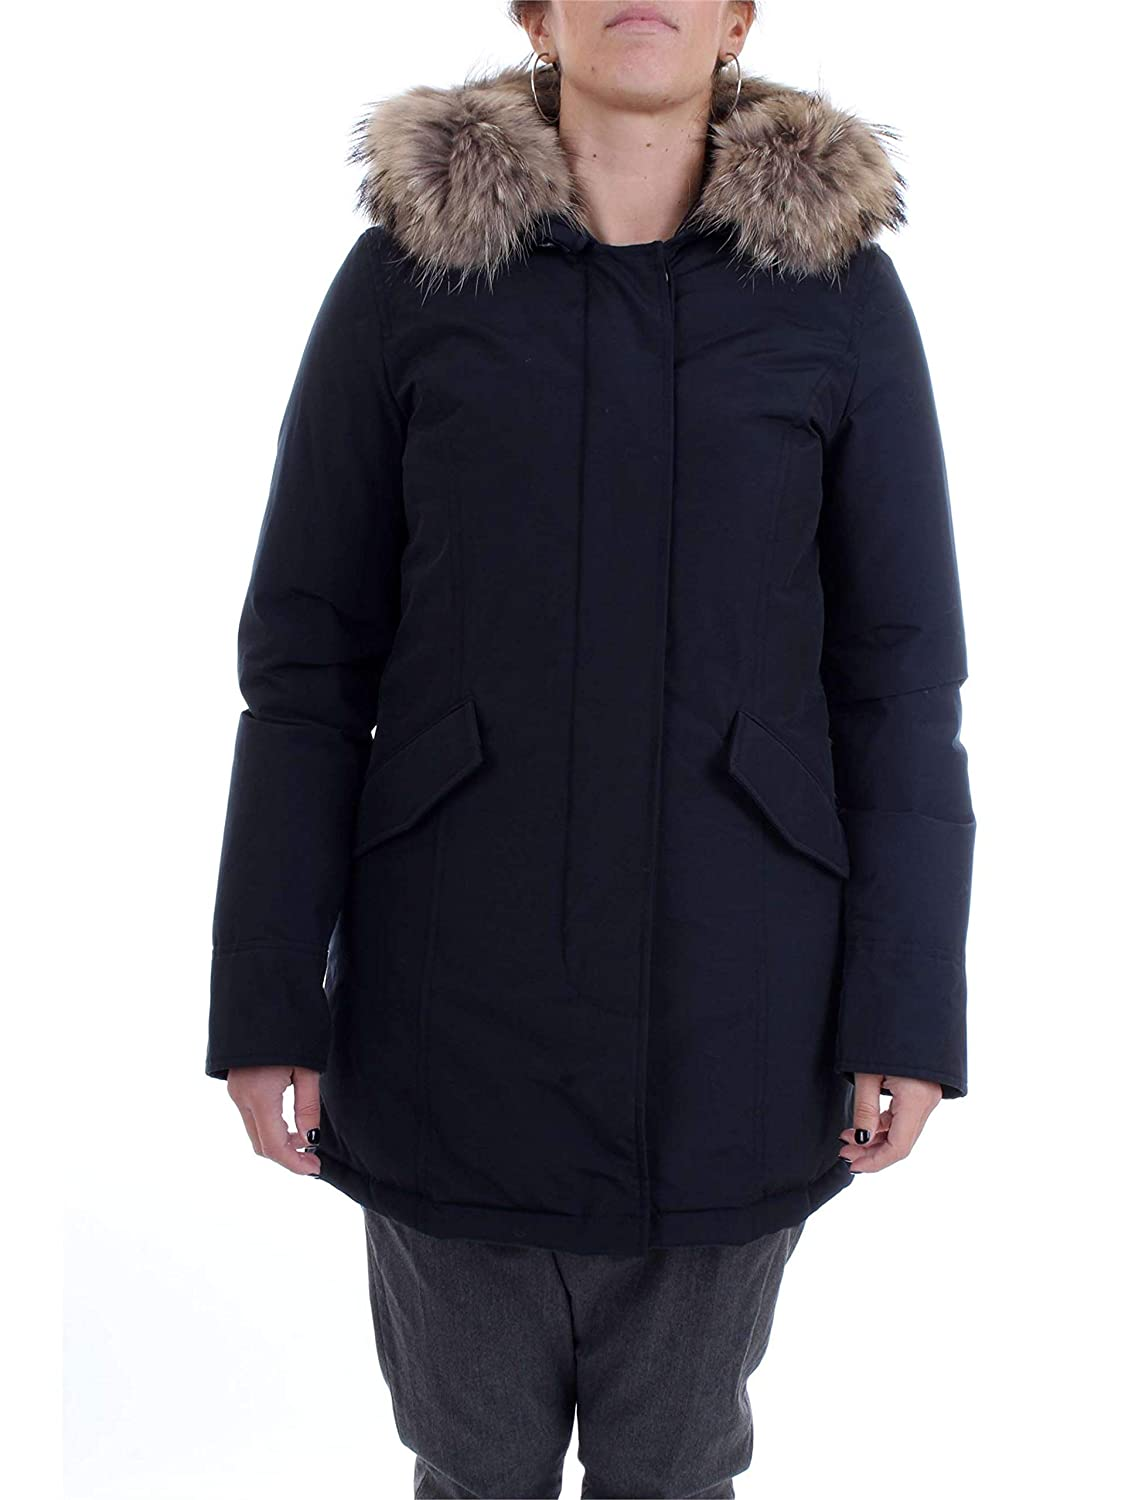 Woolrich CPS1447 CN02 Chaqueta Mujer XS: Amazon.es: Ropa y ...